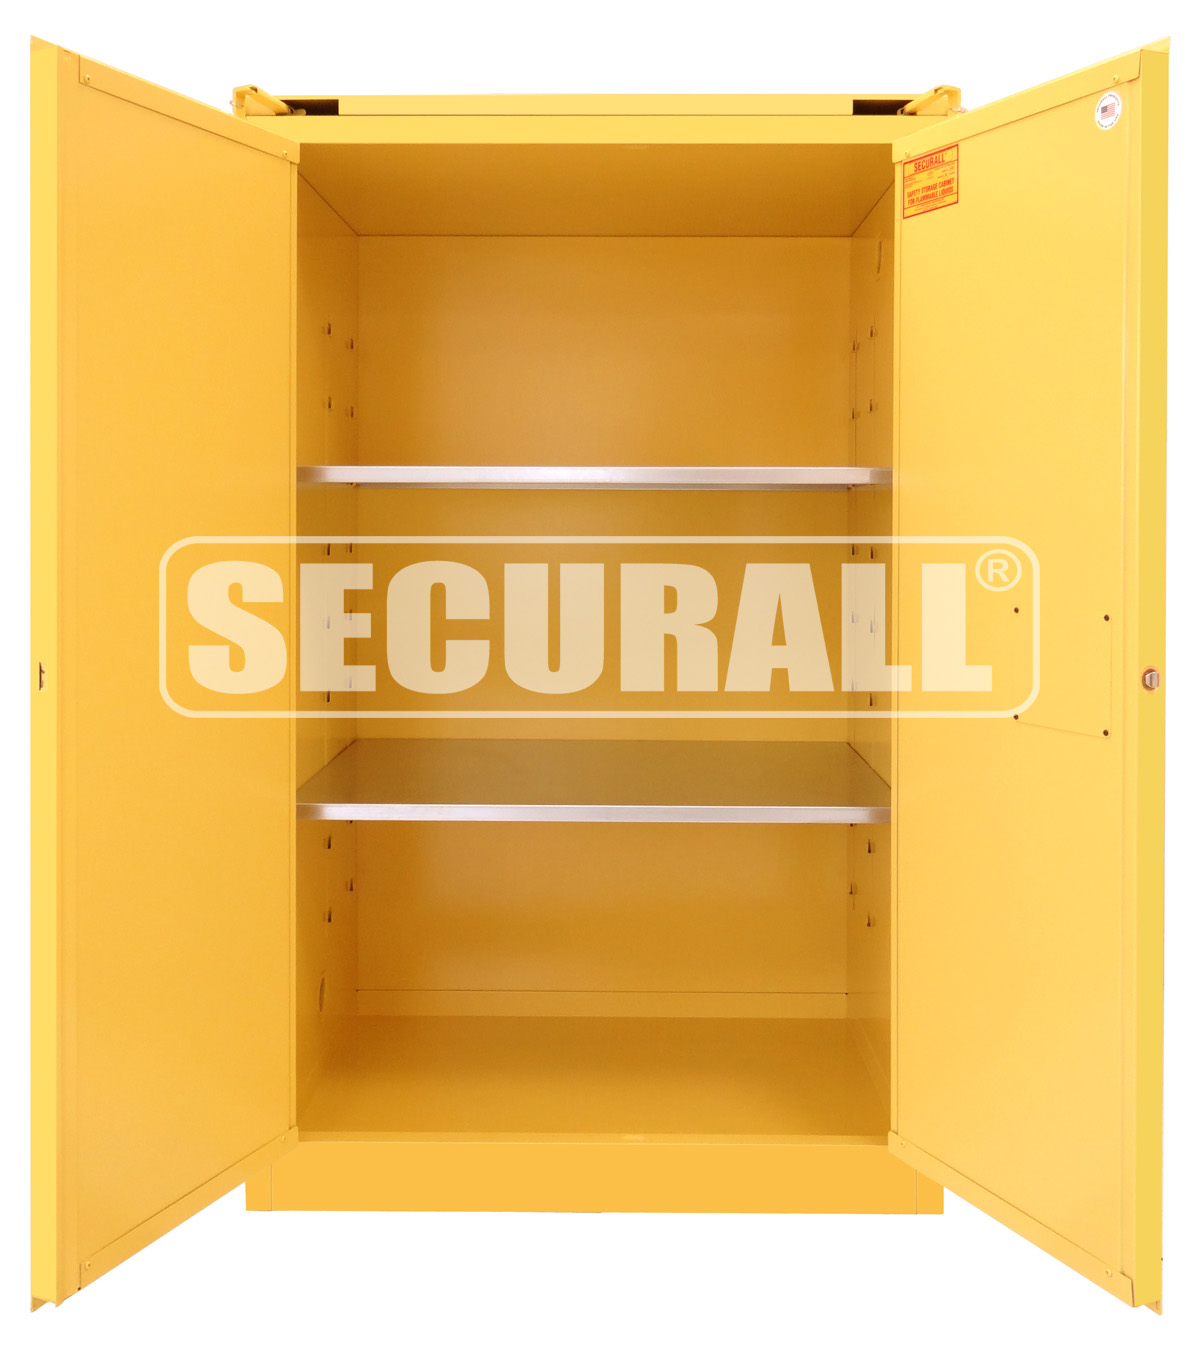 SECURALL®: Flammable Storage, Flammable Cabinet, Flammable Storage Cabinets,  Flammable Liquid Storage, Hazardous Material Storage Cabinets U0026 Buildings